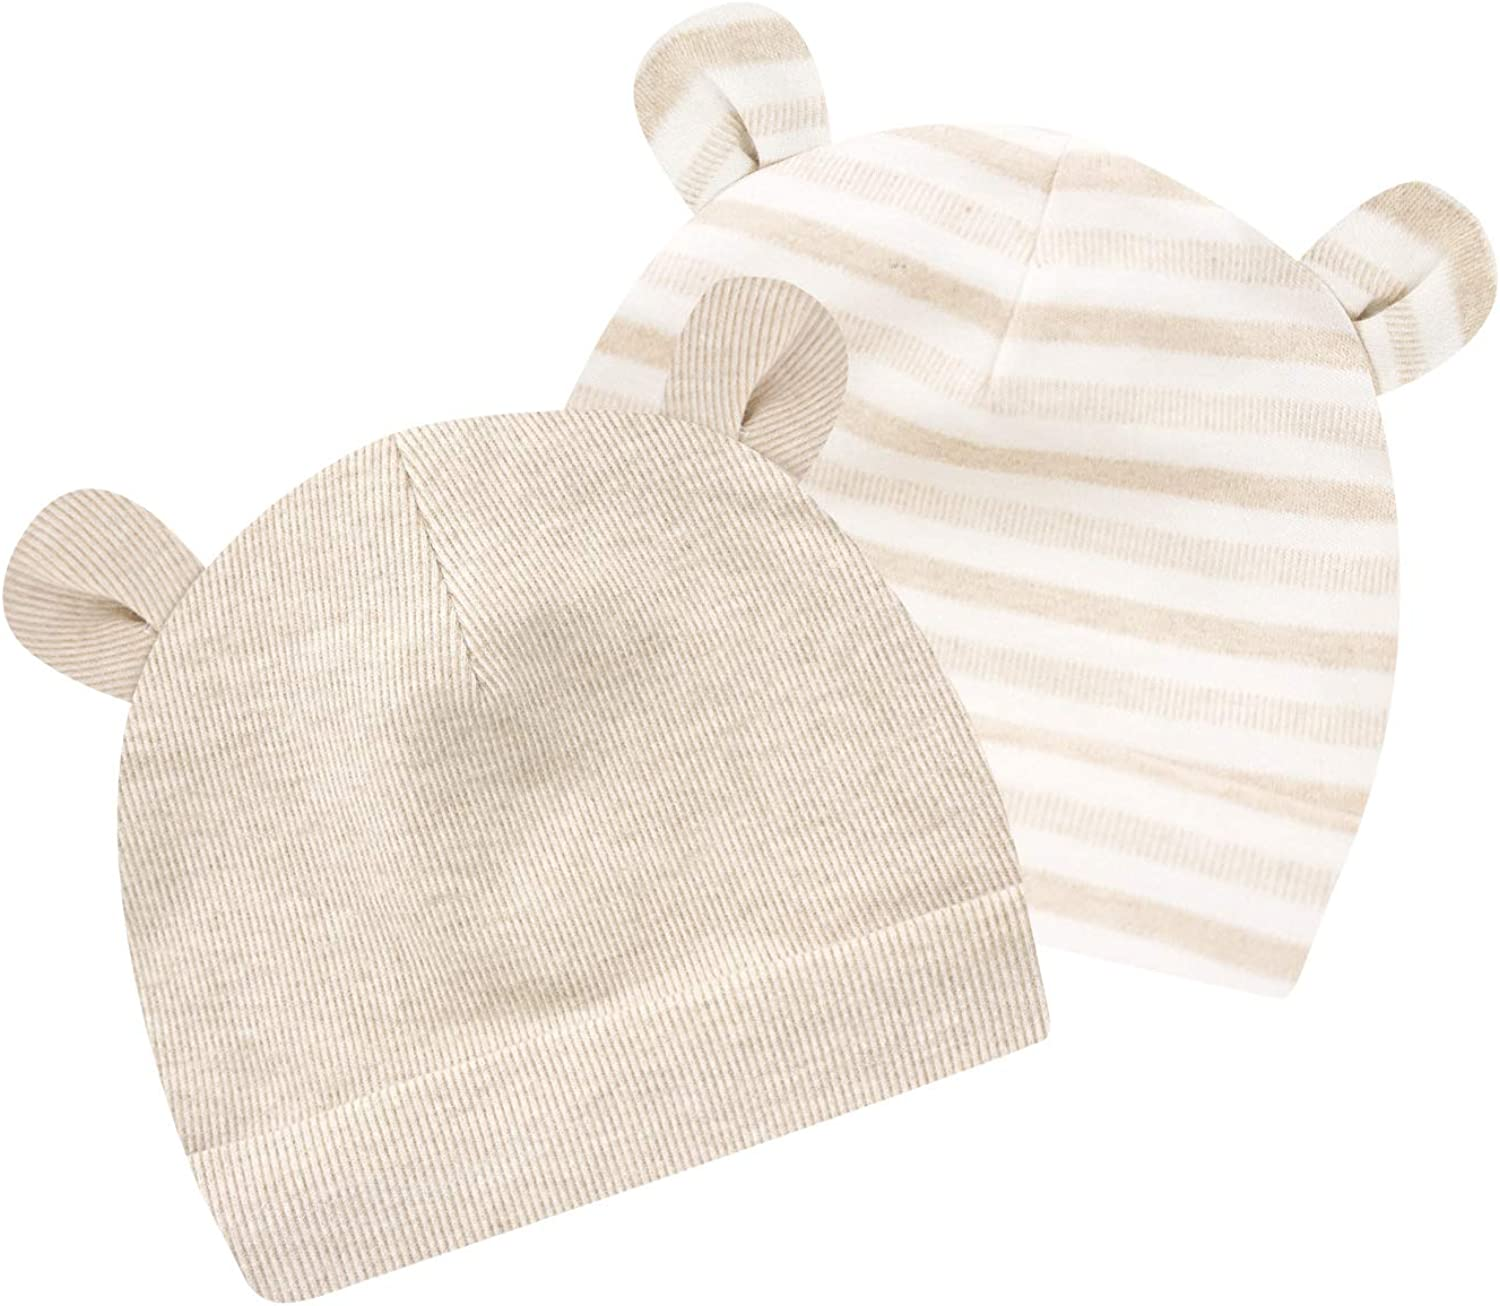 VBIGER 3 Pack Baby Beanie Hat Toddler Boys Girls 100/% Cotton Cap Soft Double Layered Hats Aged 1-3